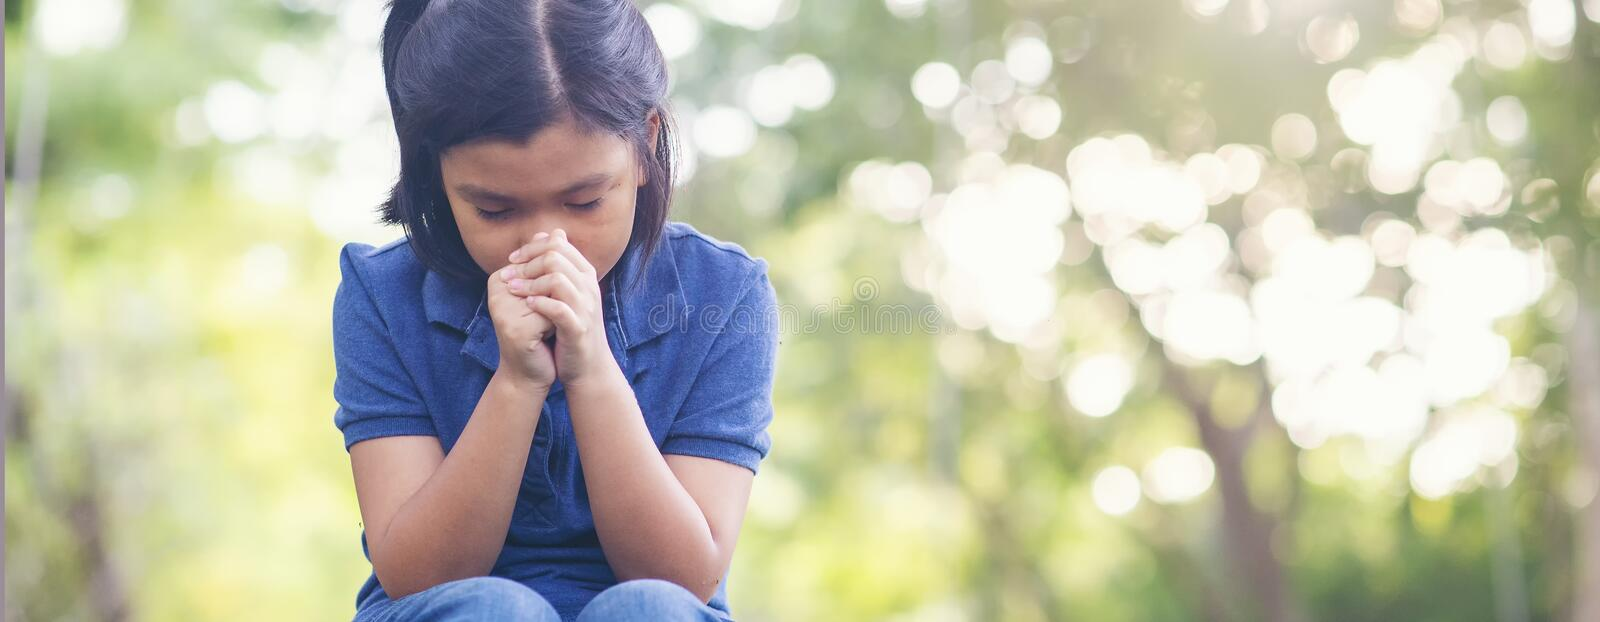 Pray concept. Asian child praying,hope for peace and free from disease,Hand in hand together by kid ,believes and faith in christian religion at church stock photo